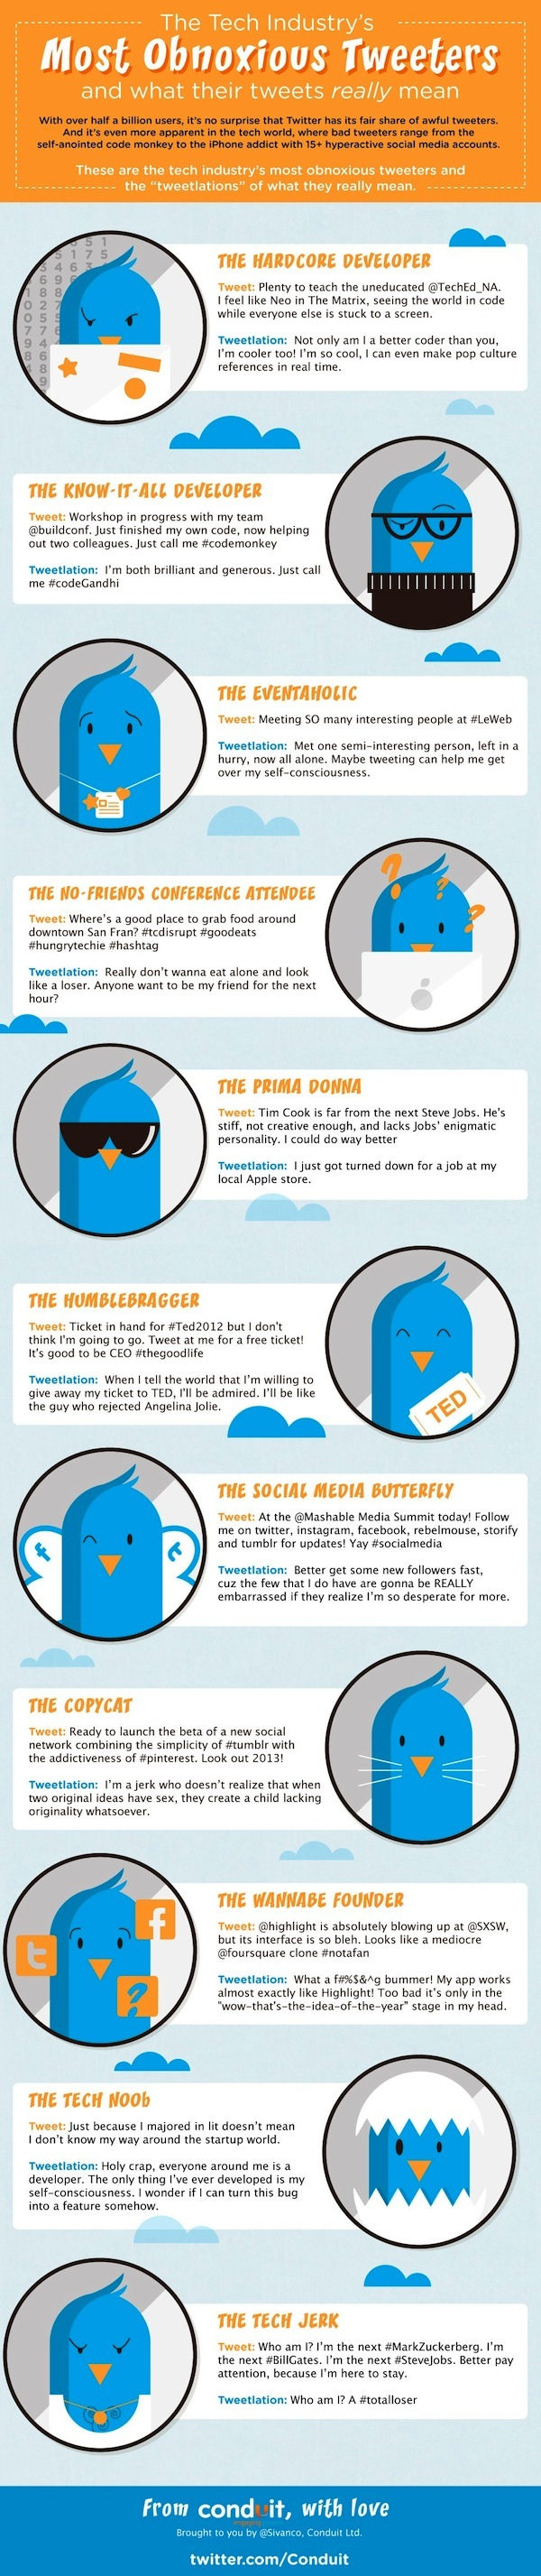 The Tech Industry's Most Obnoxious Tweeters [INFOGRAPHIC]